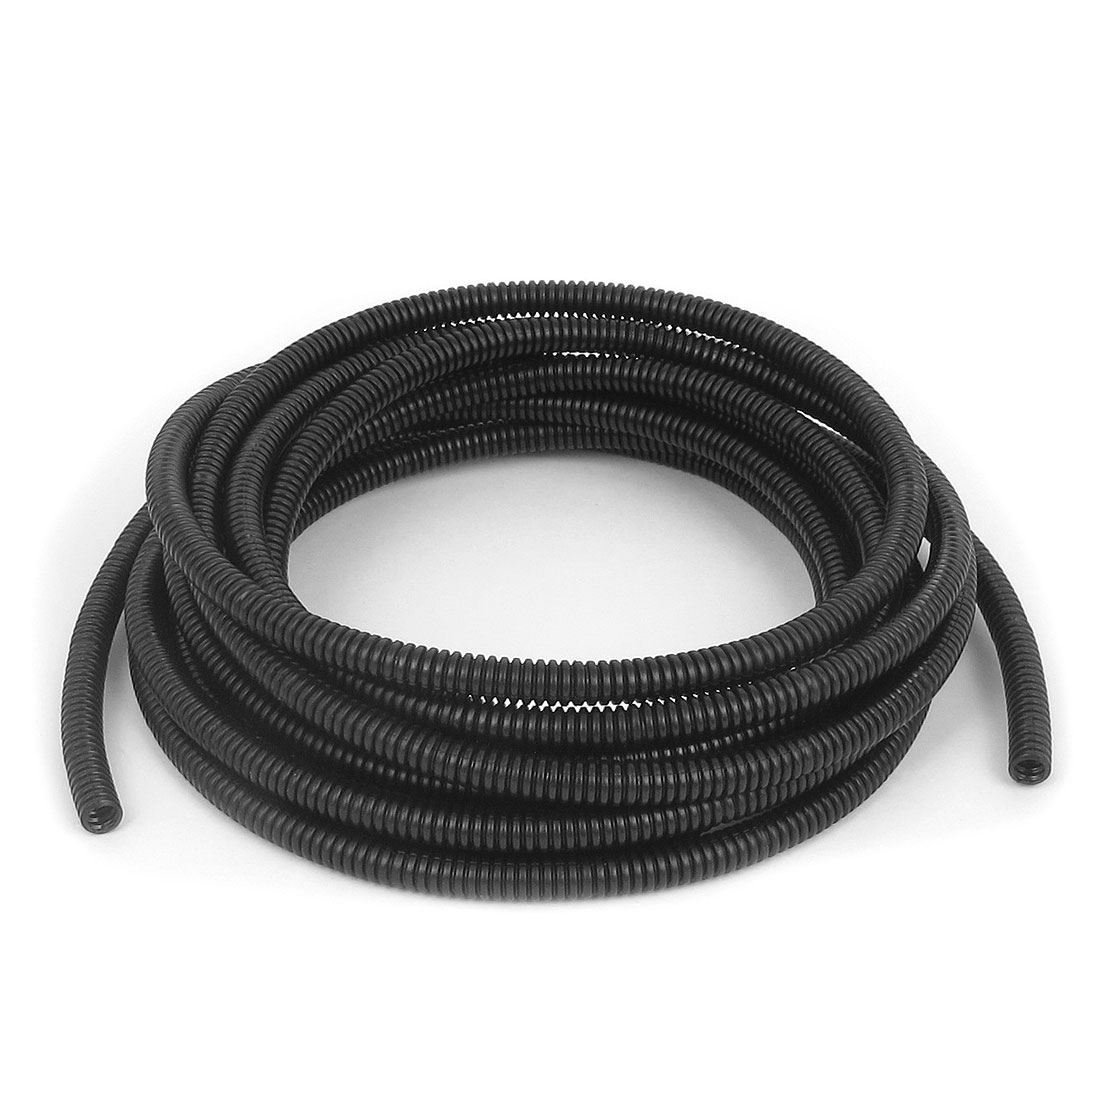 Flex Cable Tubing : Uxcell mm inner dia flexible corrugated bellows tube hose